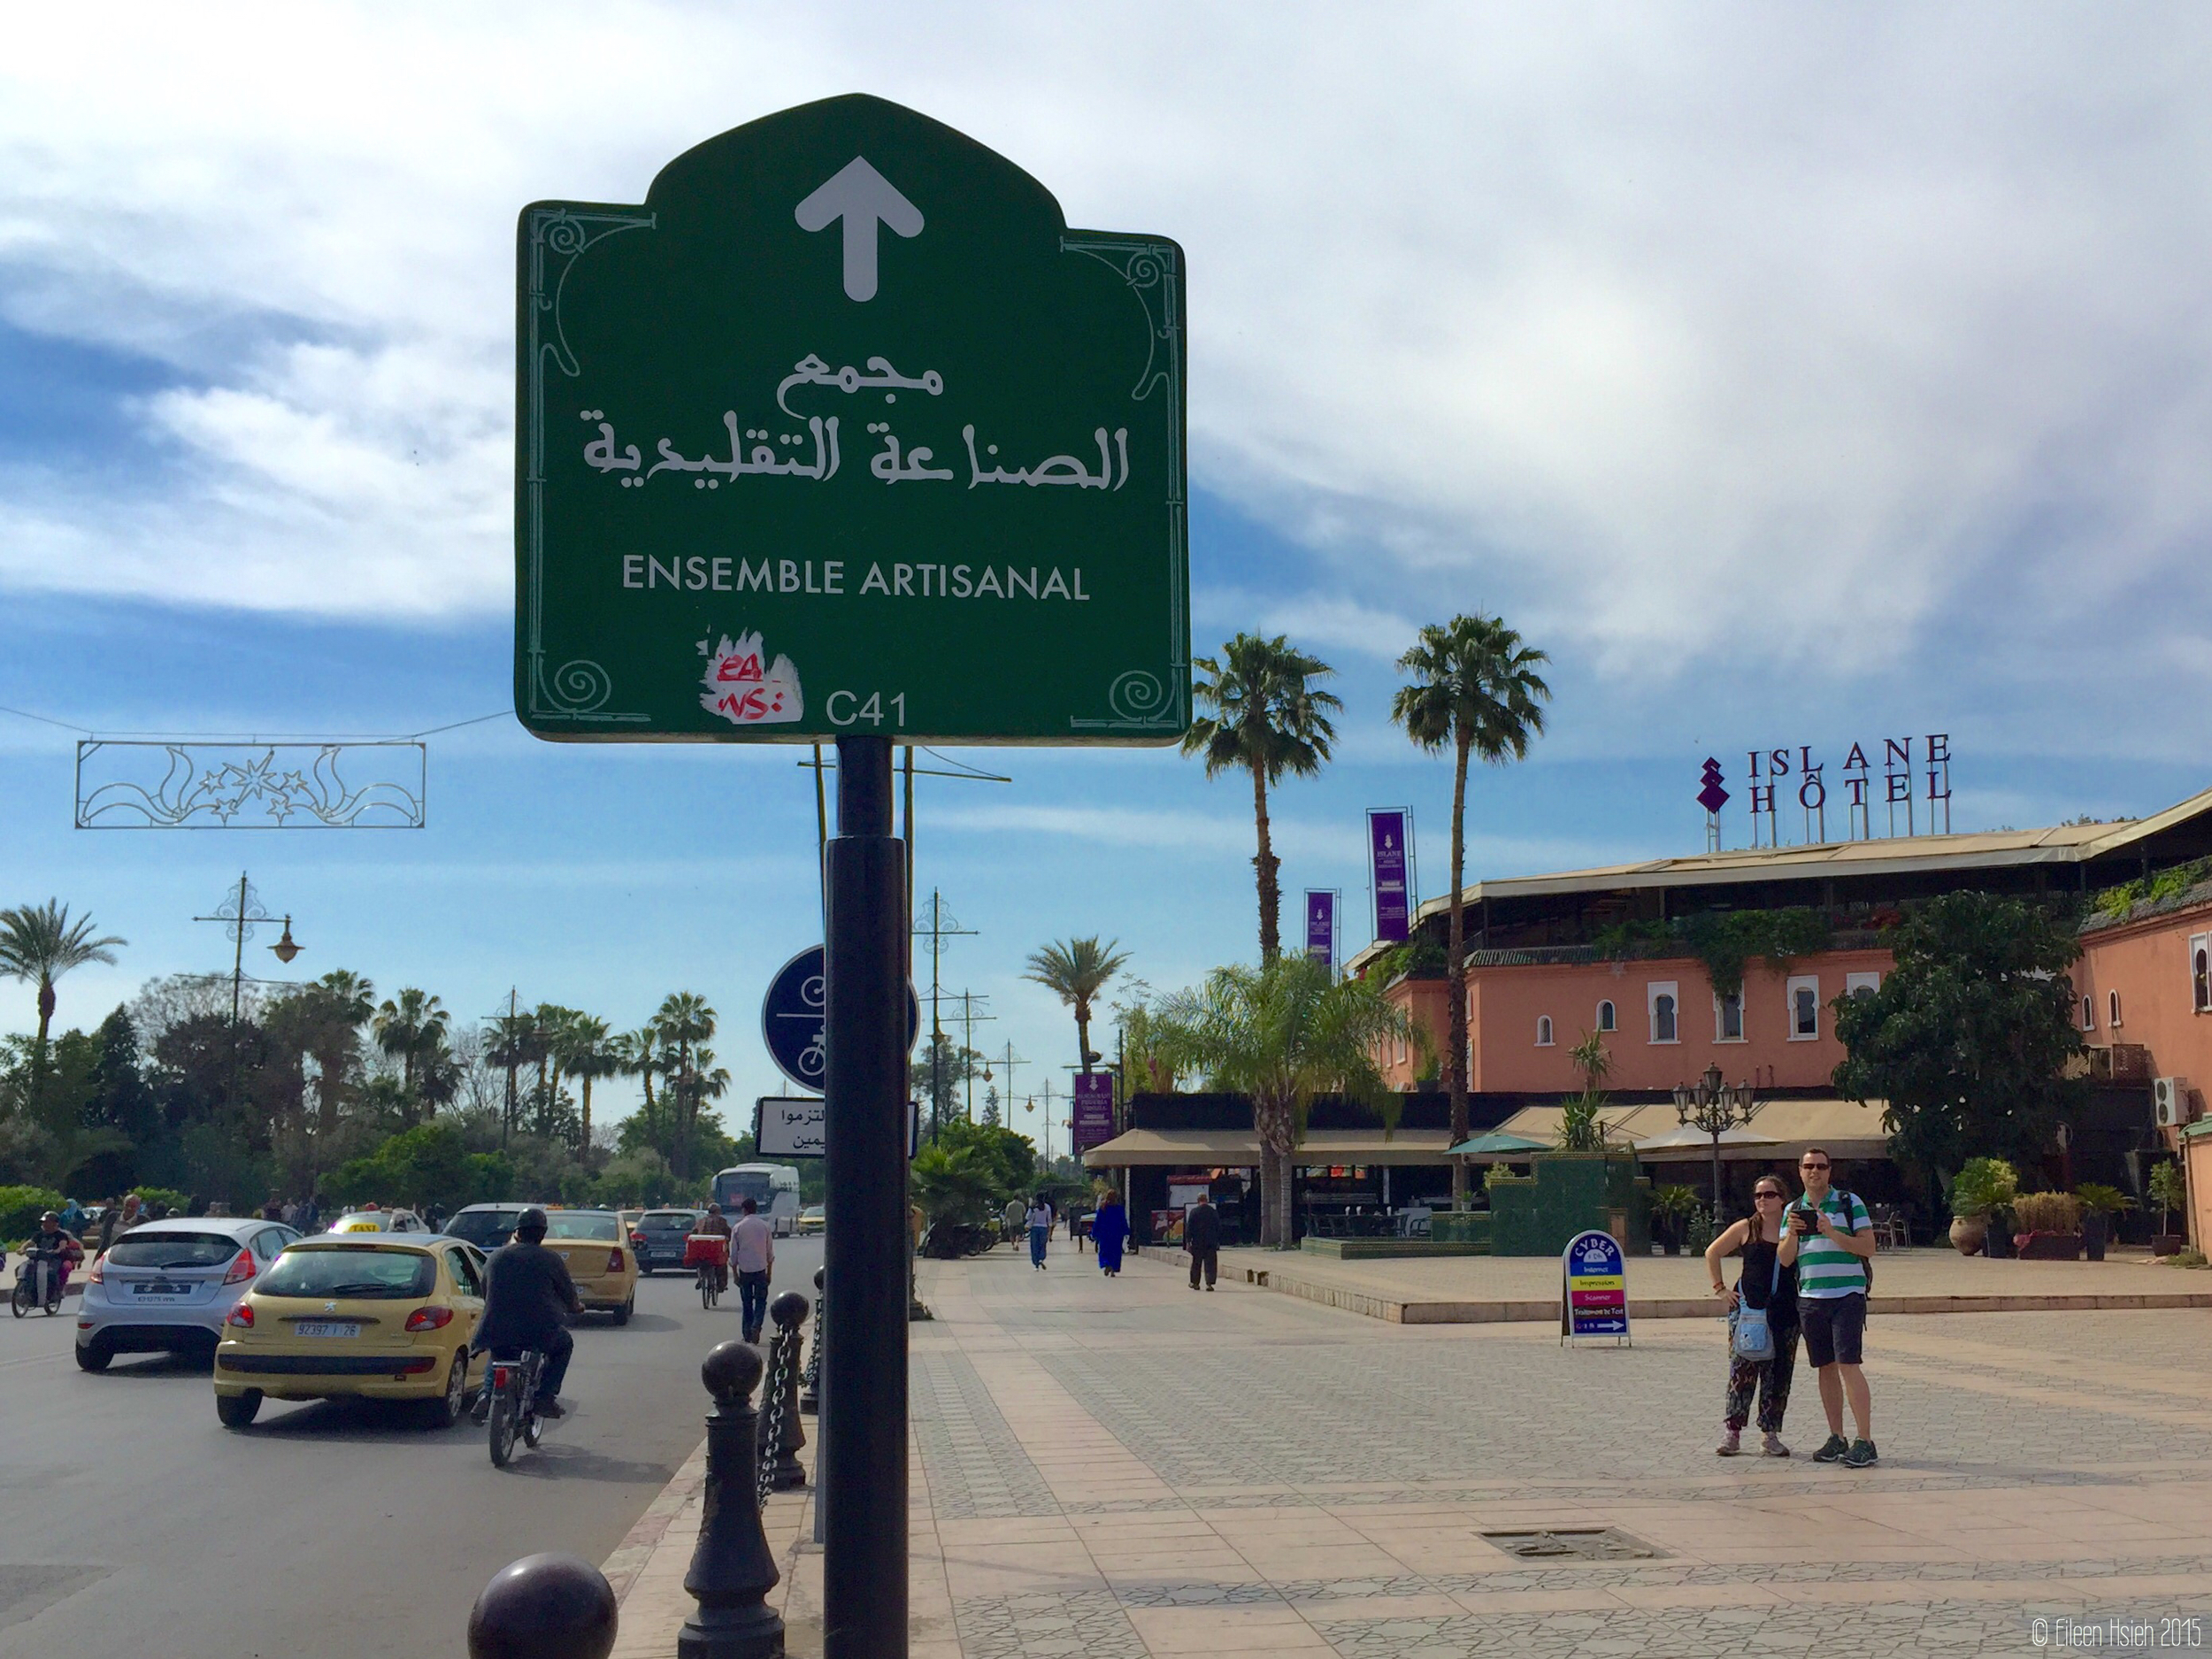 Boutique shops, cafes and hotels line the wide boulevard in the new part of Marrakech.  馬拉喀什新區裡寬敞的大道旁有許多精品店,咖啡廳與酒店。